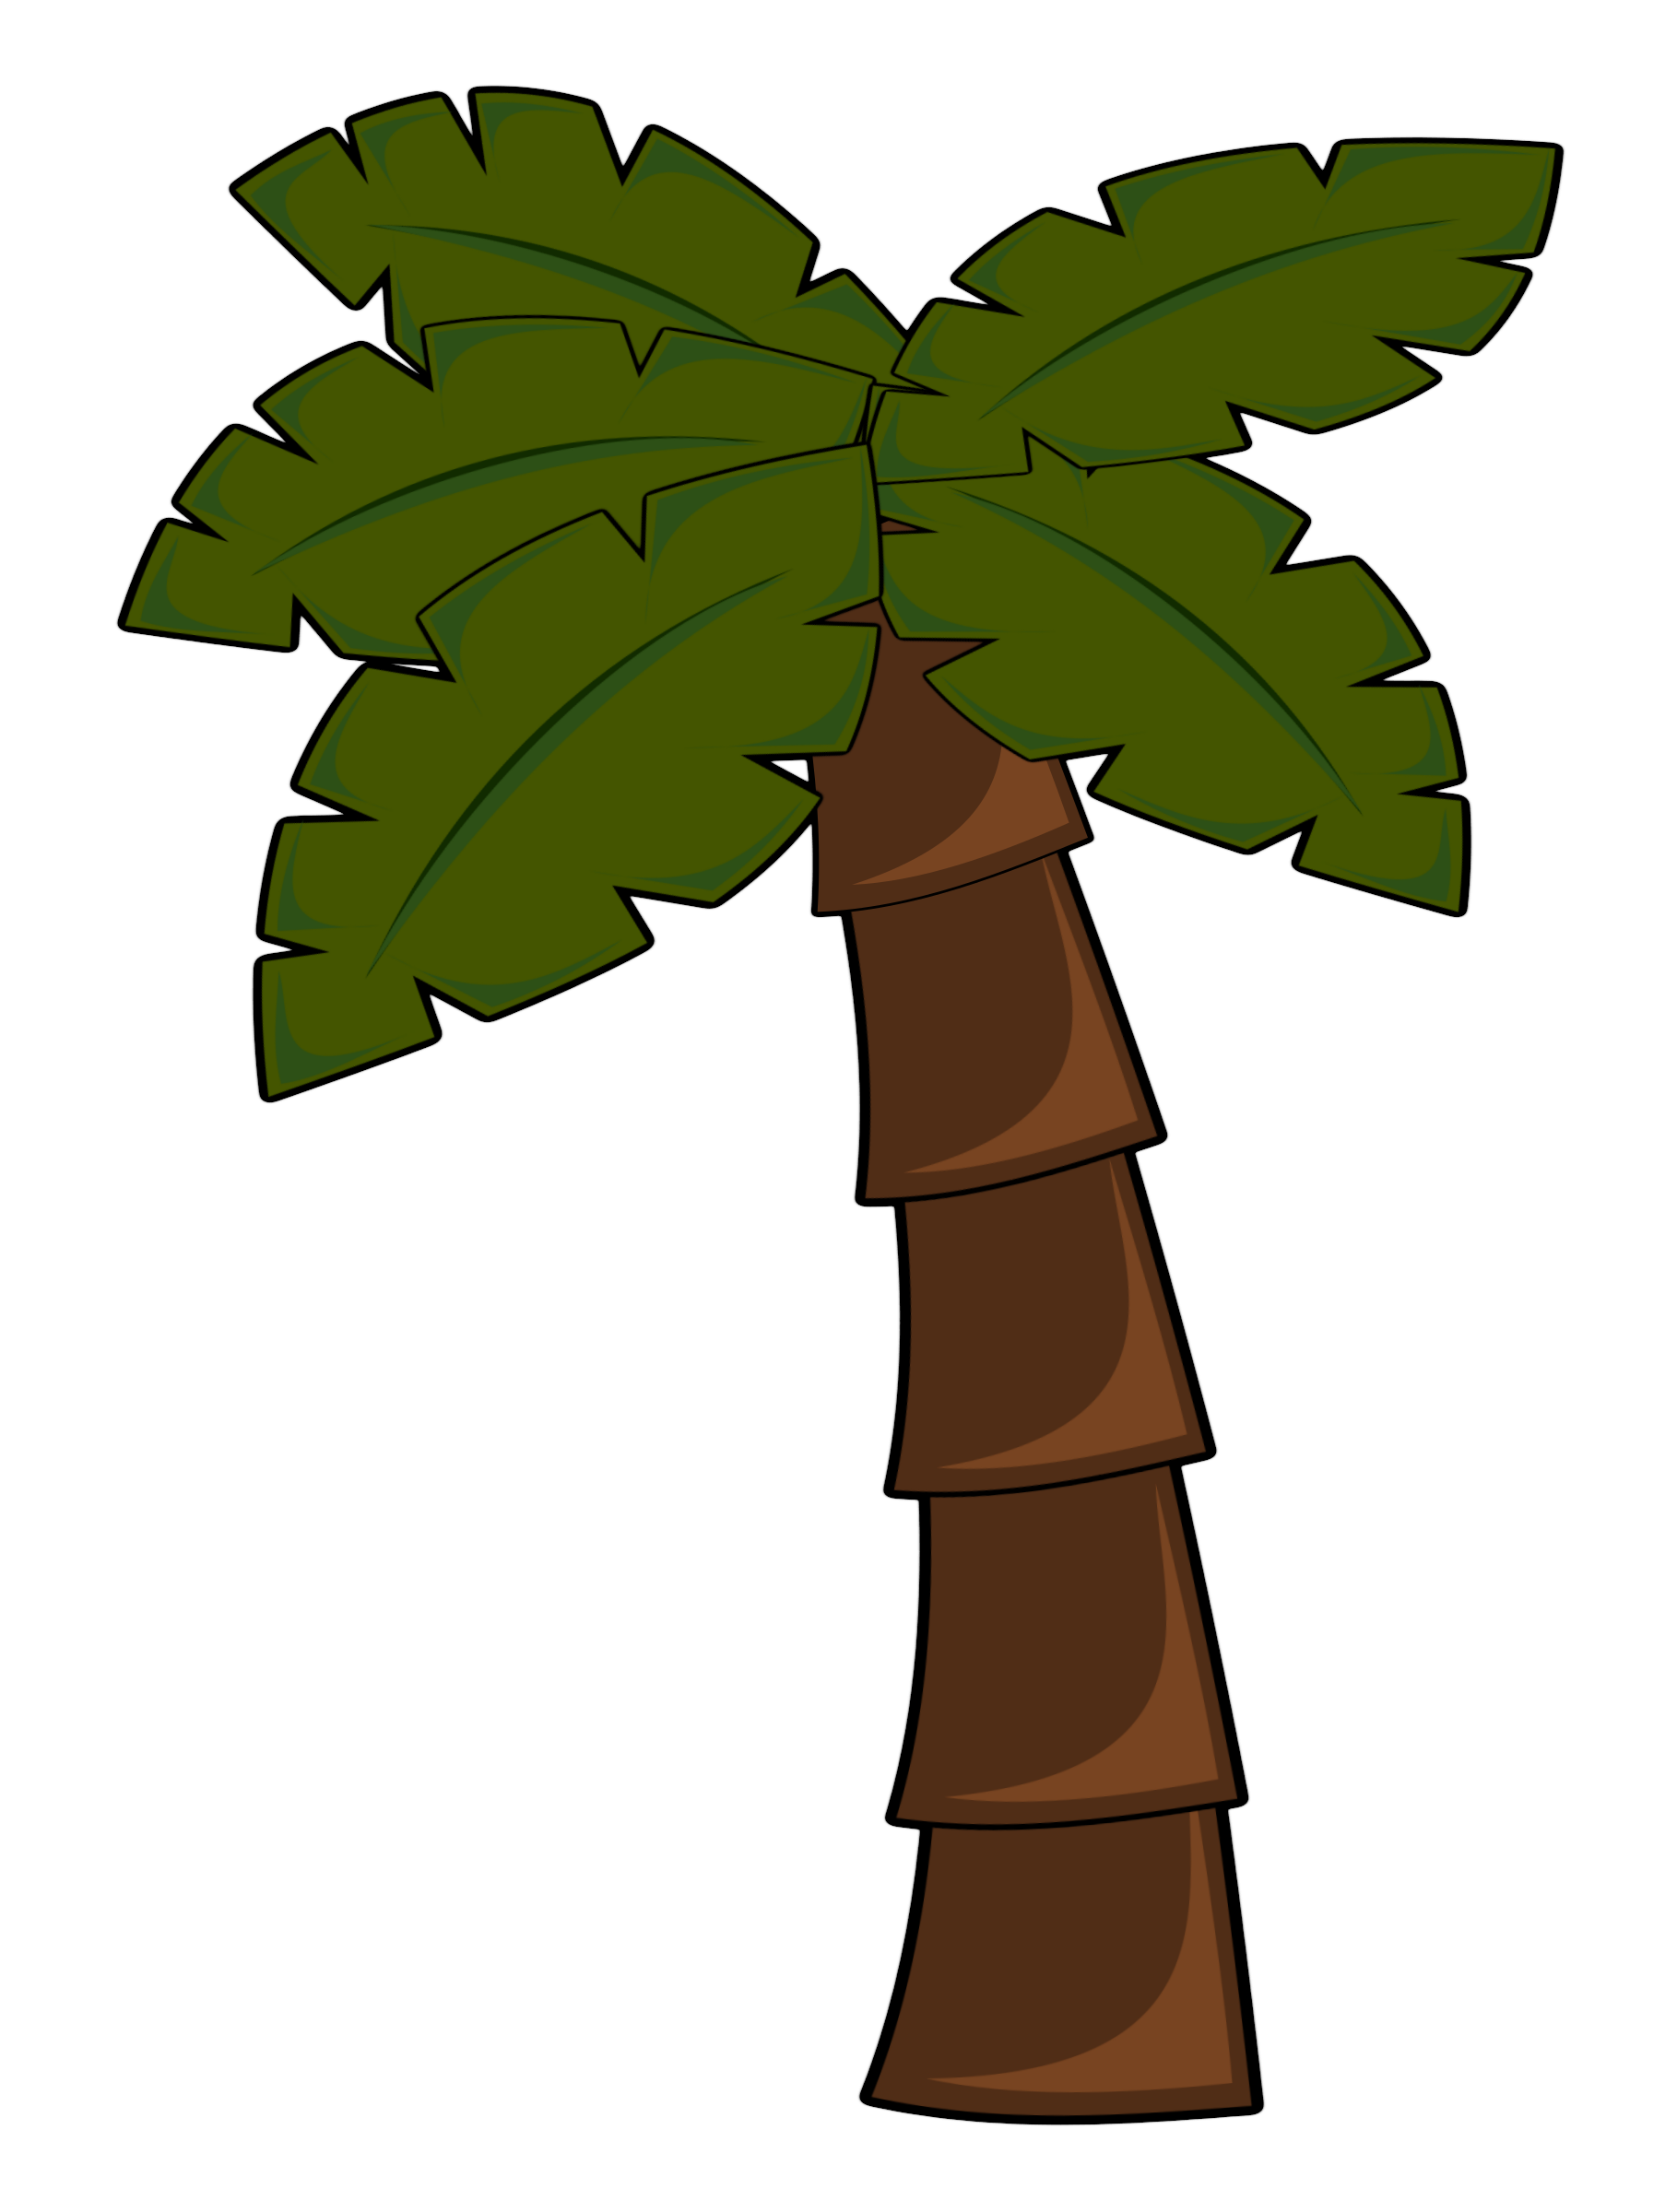 Palm Tree by stevepetmonkey